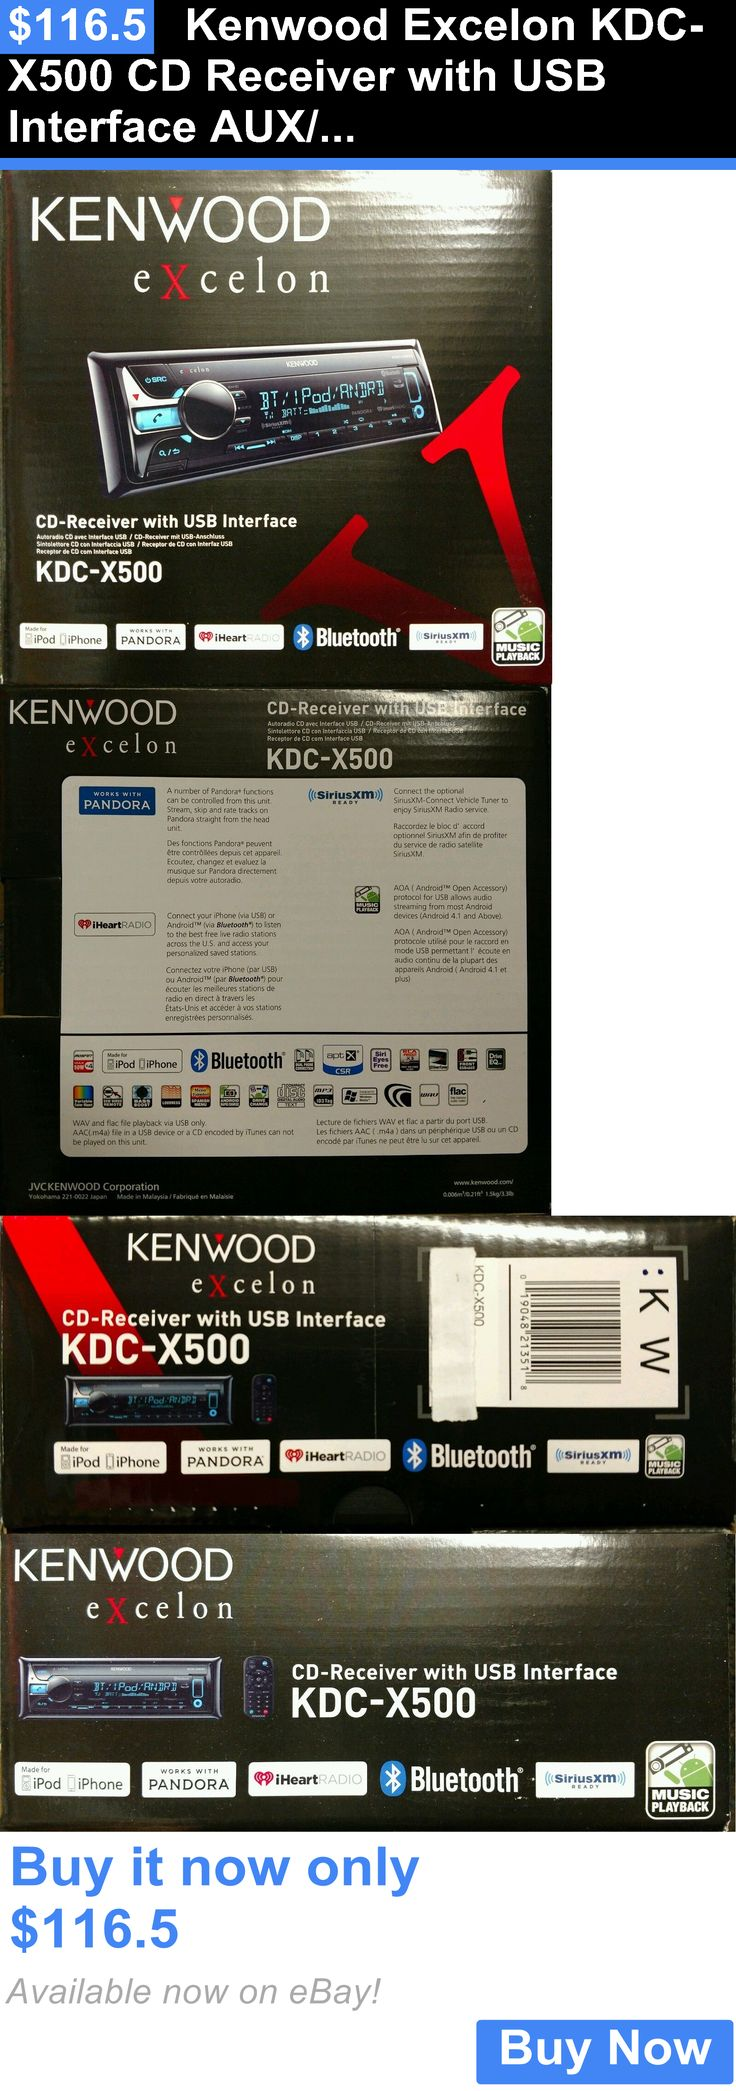 Car Audio In-Dash Units: Kenwood Excelon Kdc-X500 Cd Receiver With Usb Interface Aux/Bt/Siriusxm BUY IT NOW ONLY: $116.5